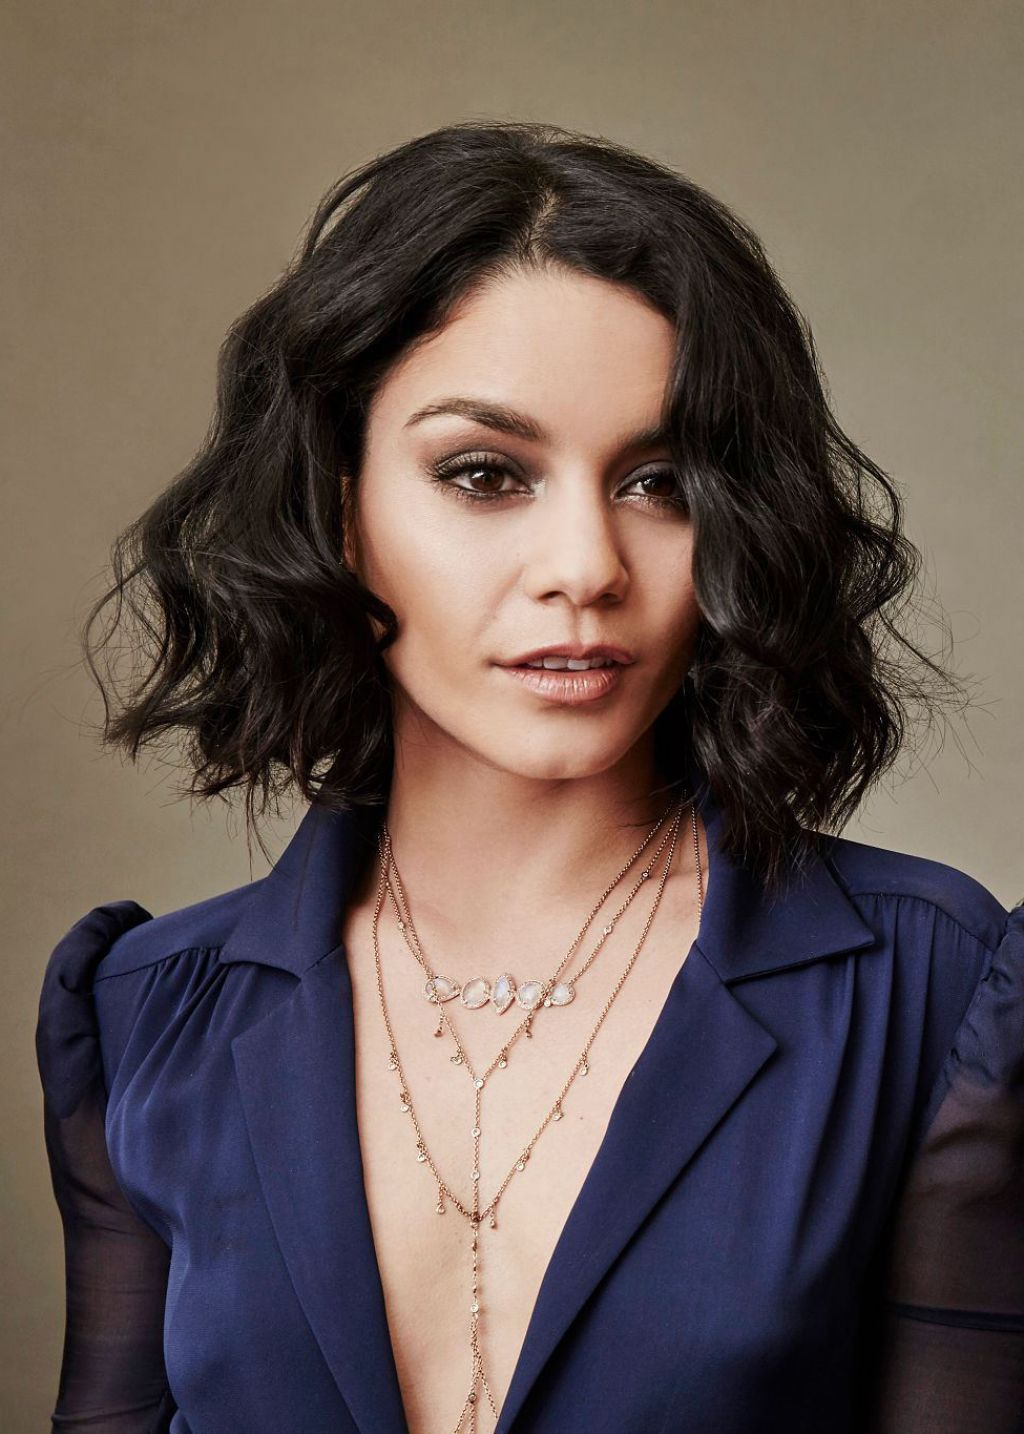 Nude Photos Of Vanessa Hudgens 52